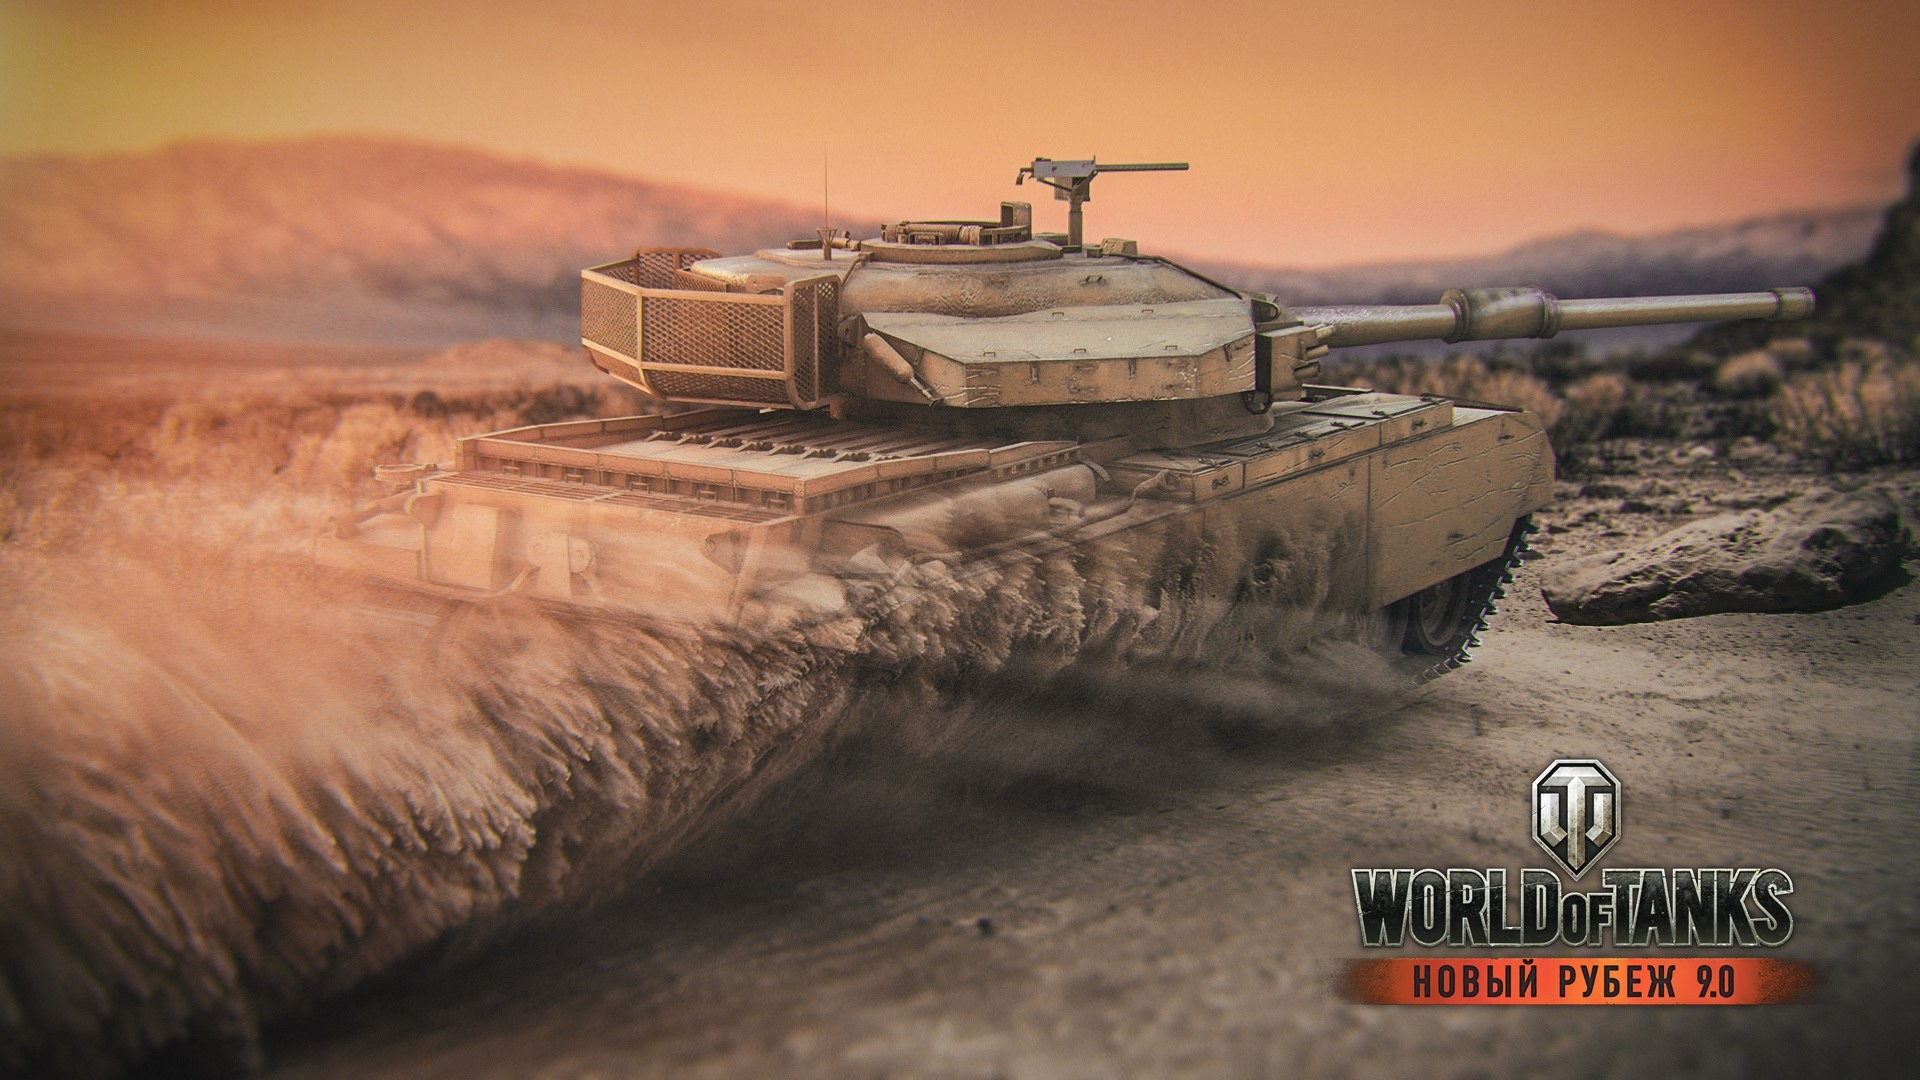 Girls Und Panzer Wallpaper World Of Tanks Wargaming Video Games Centurion Mk 7 1